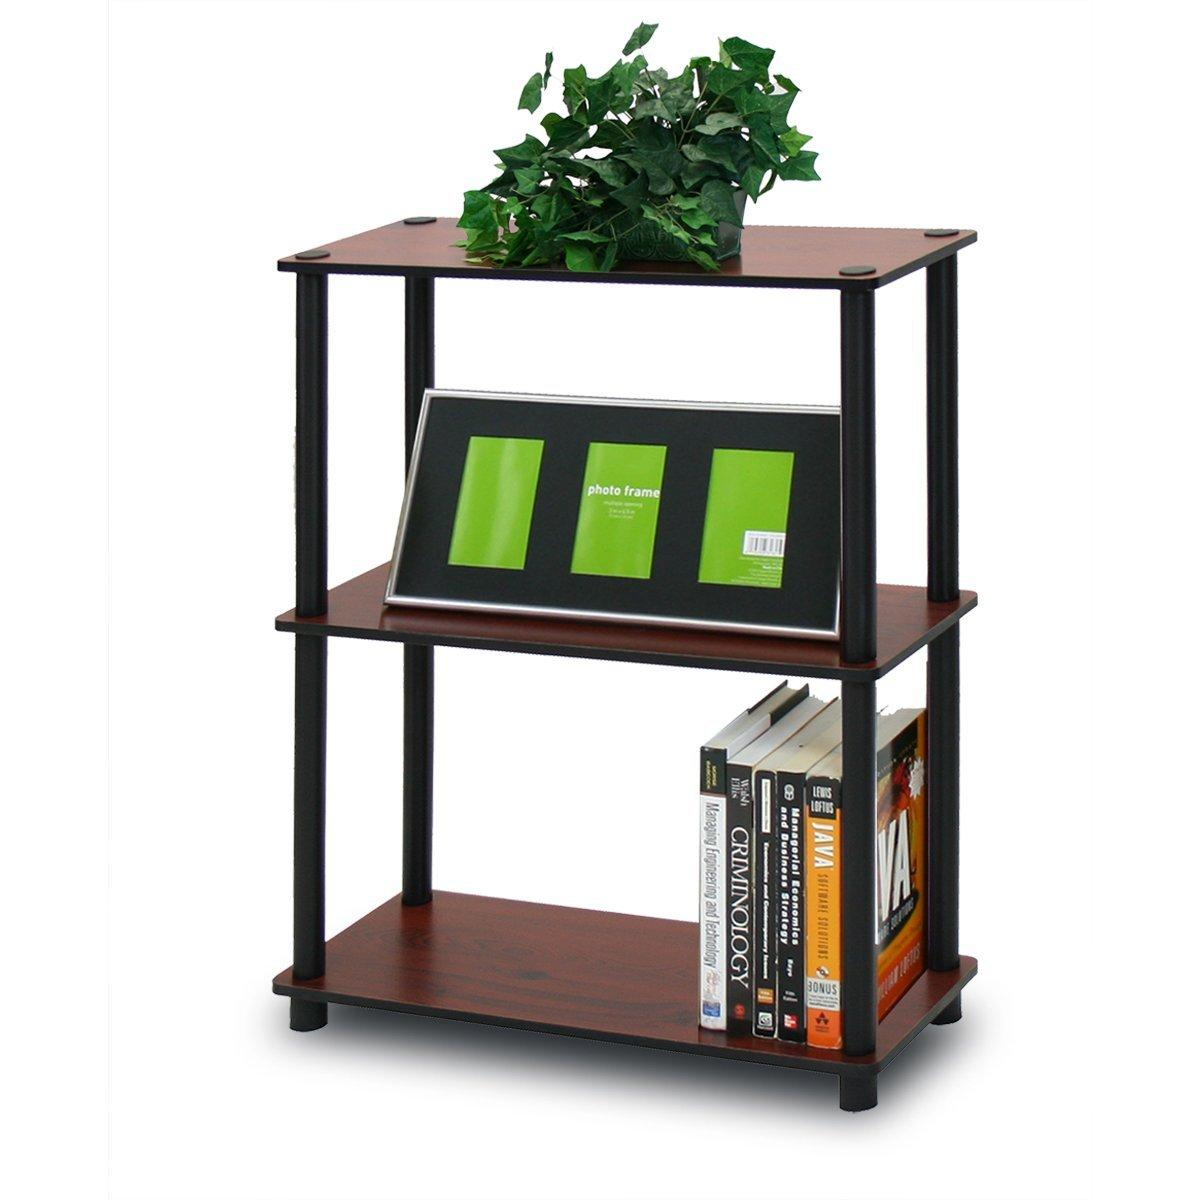 Furinno 10024DC/BK Turn-N-Tube 3-Tier Compact Multipurpose Shelf Display Rack